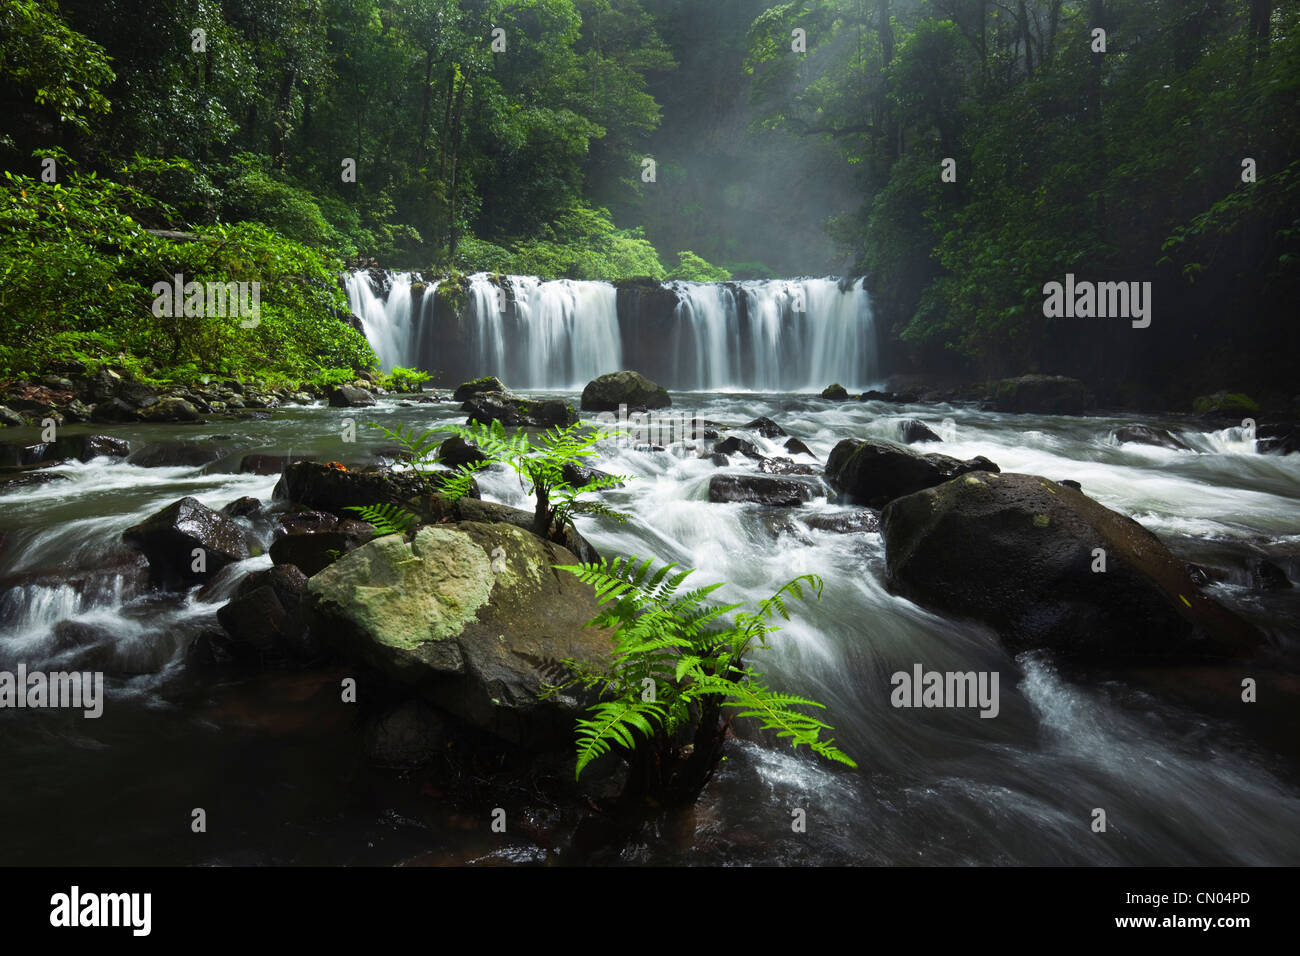 Nandroya Falls in Wooroonooran National Park.  Atherton Tablelands, Innisfail, Queensland, Australia - Stock Image